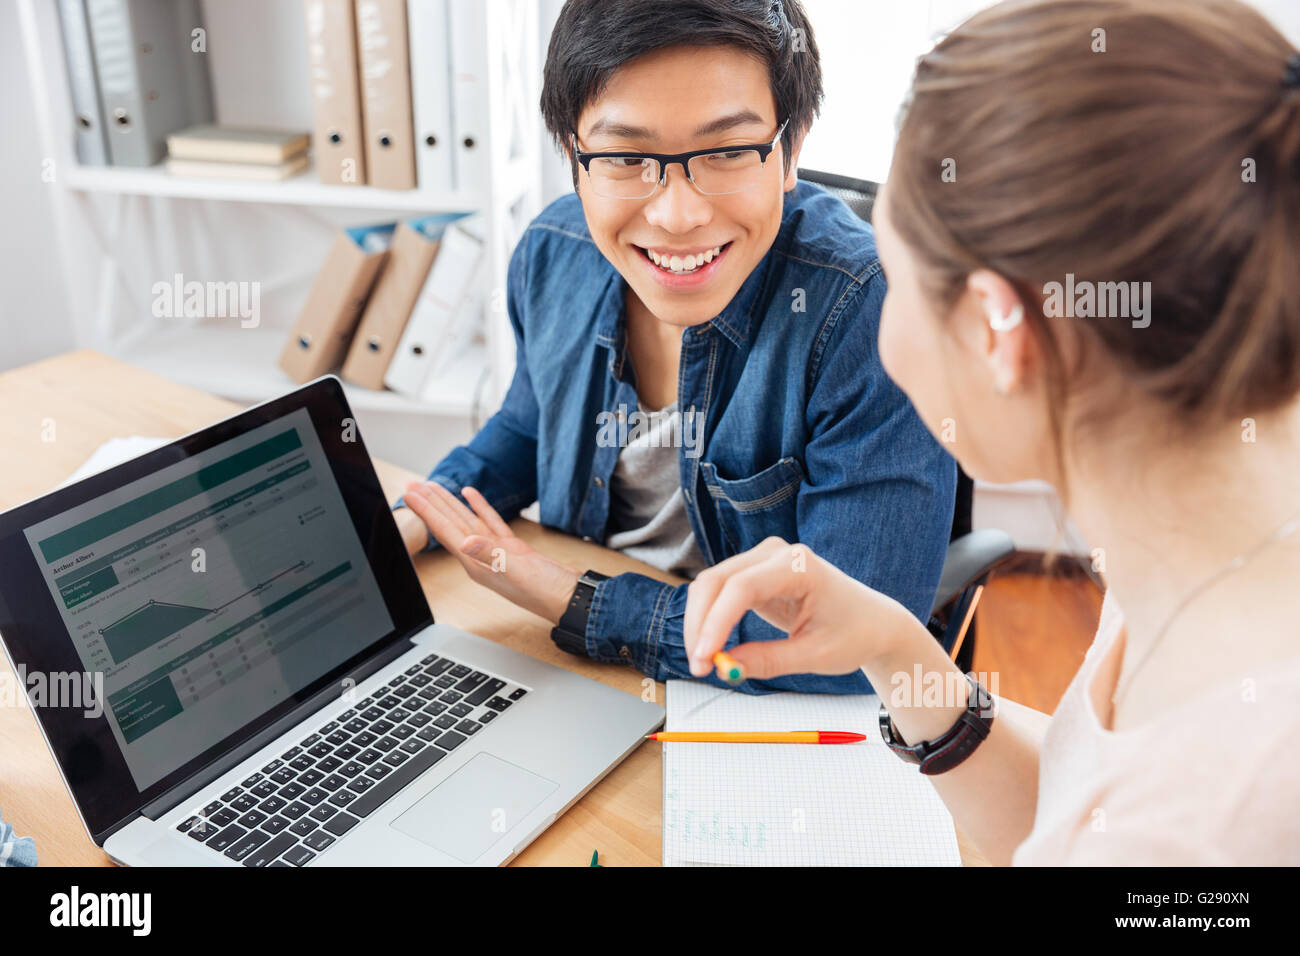 Two happy young businesspeople using laptop and working together - Stock Image